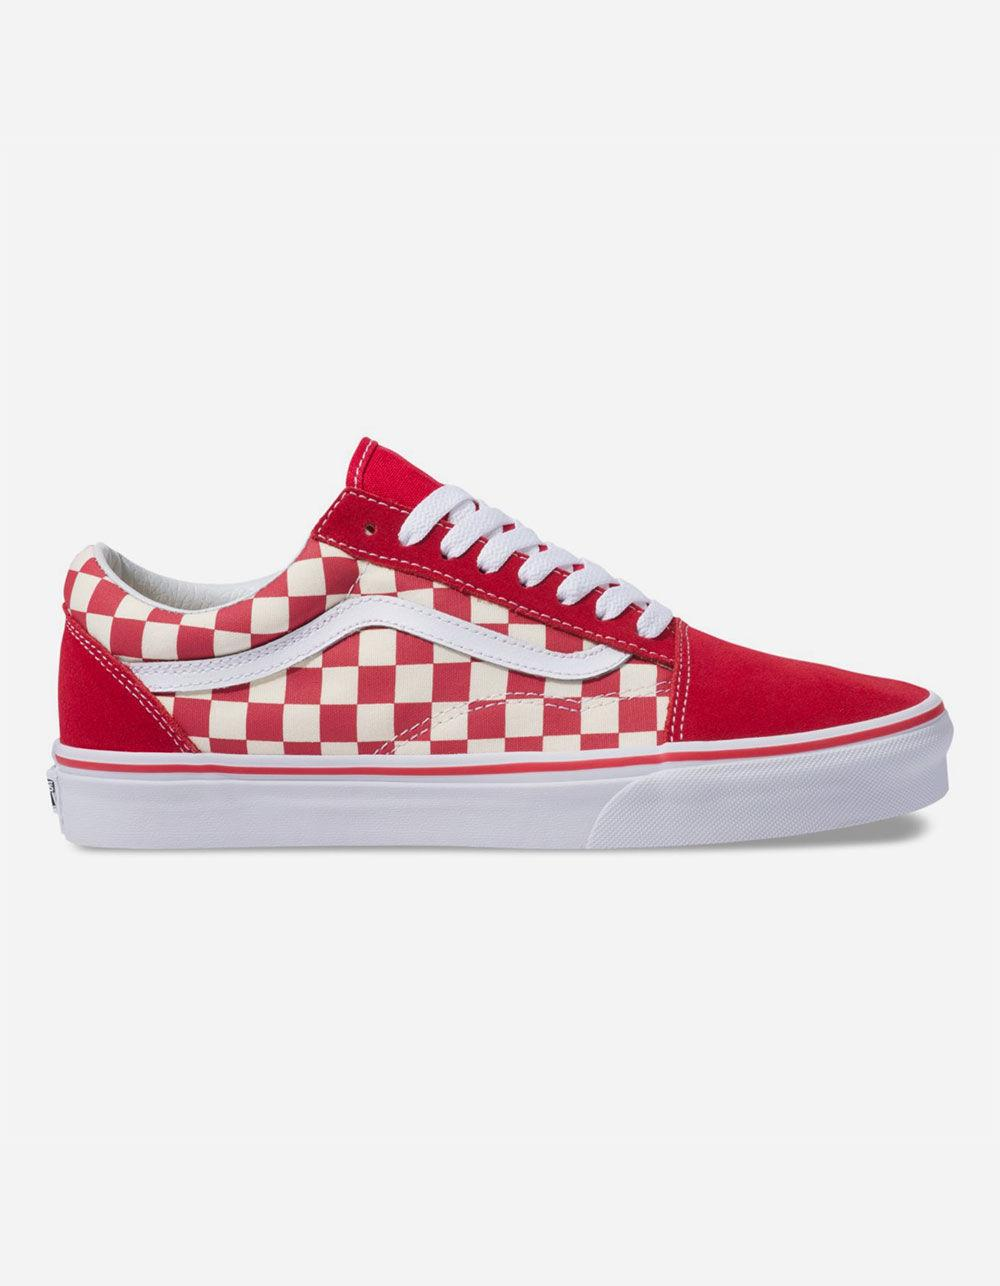 Lyst - Vans Primary Check Old Skool Racing Red   White Shoes in Red ... 8ea656eb15